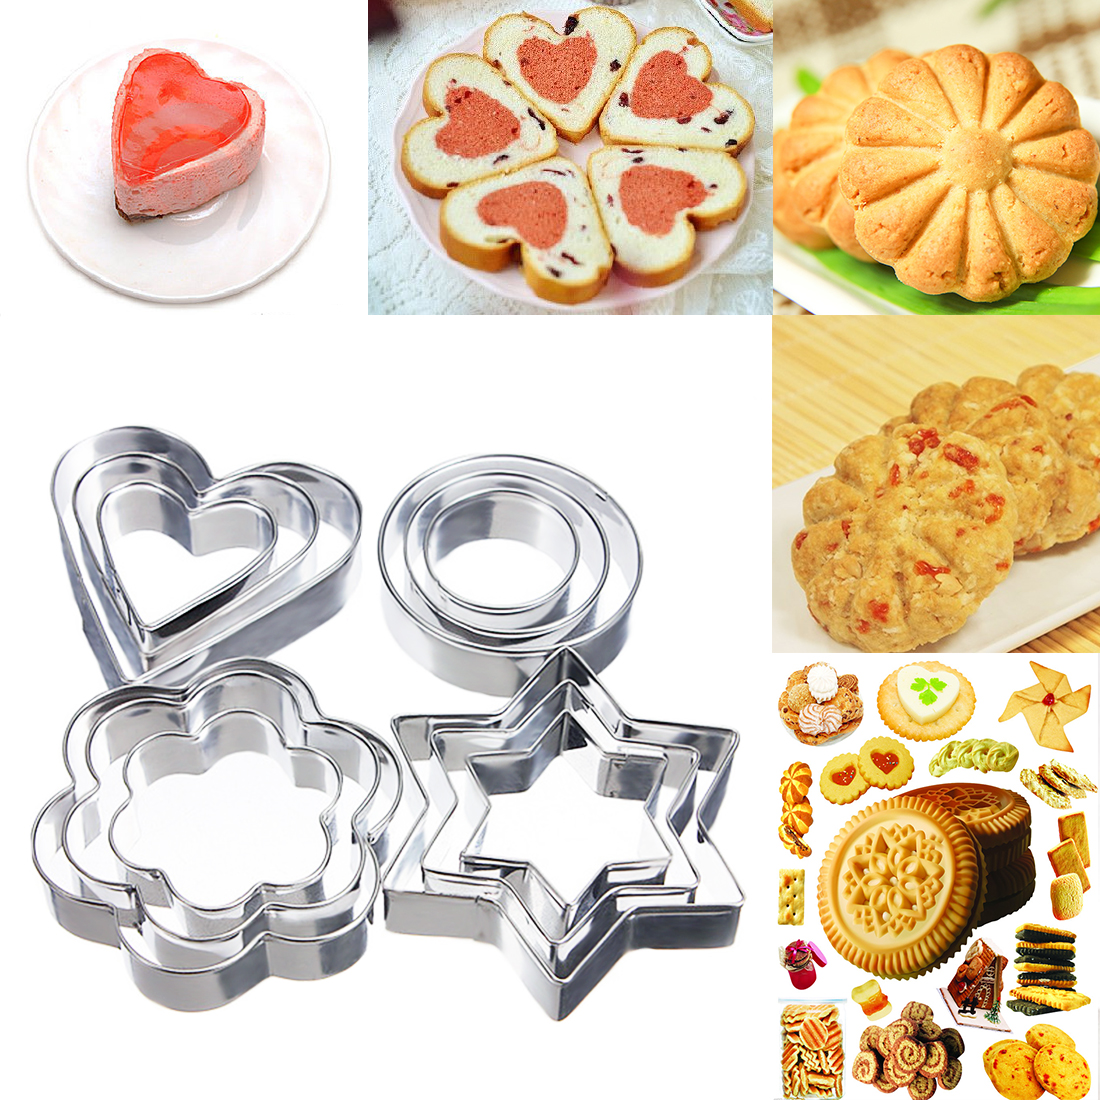 Baking Mold 12pc/set Stainless Steel Cookie Cutter Star Heart Cake Stencils Chocolate Soap Mold Pastry Biscuit DIY Kitchen